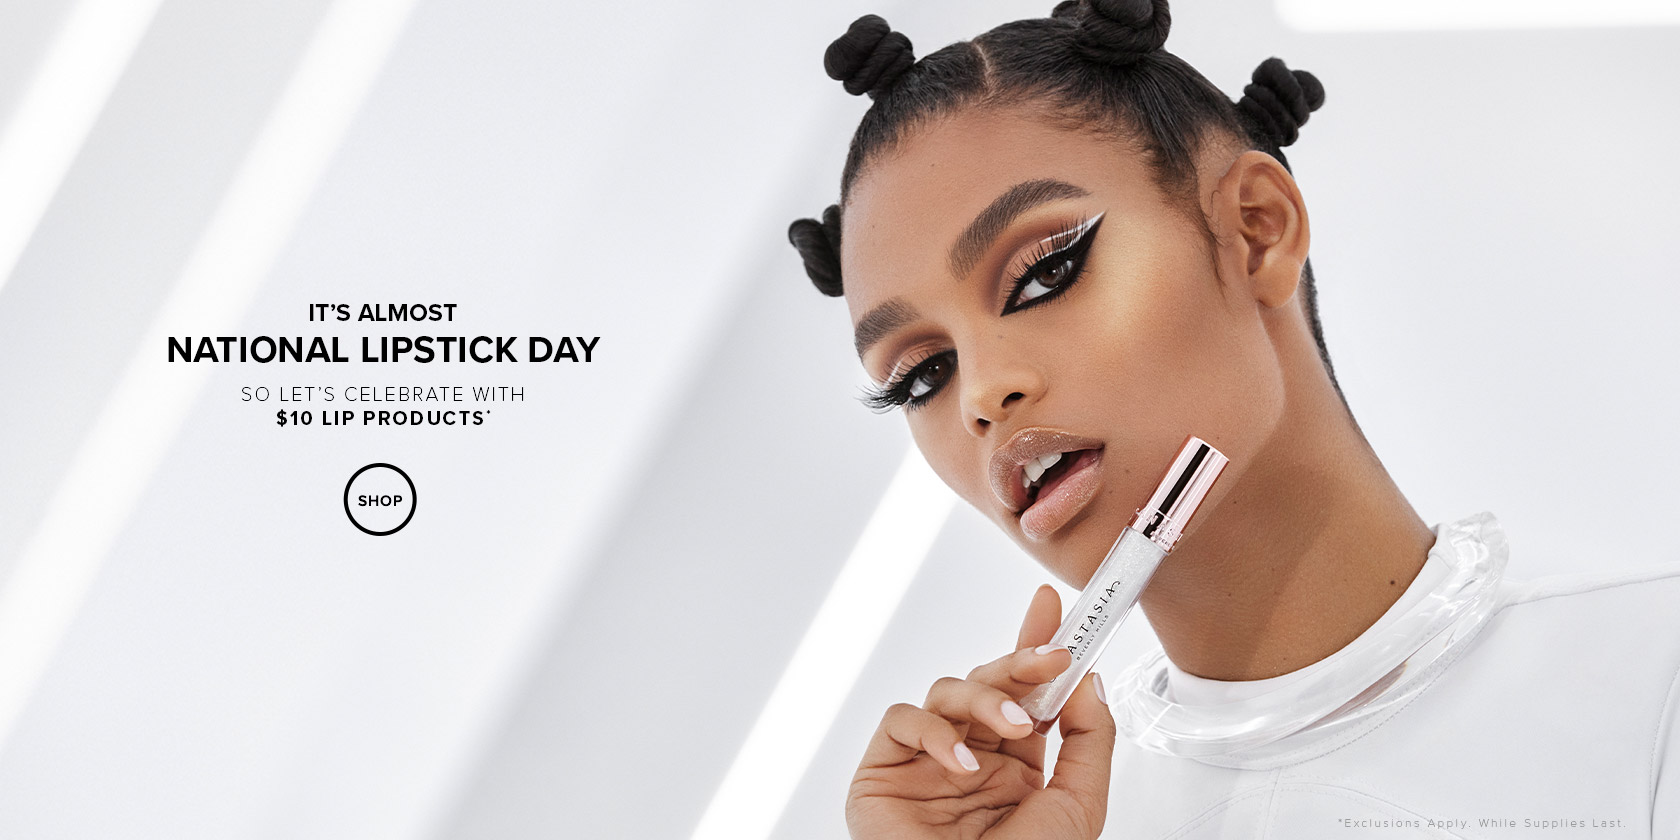 Celebrate National Lipstick Day with $10 Lip Products